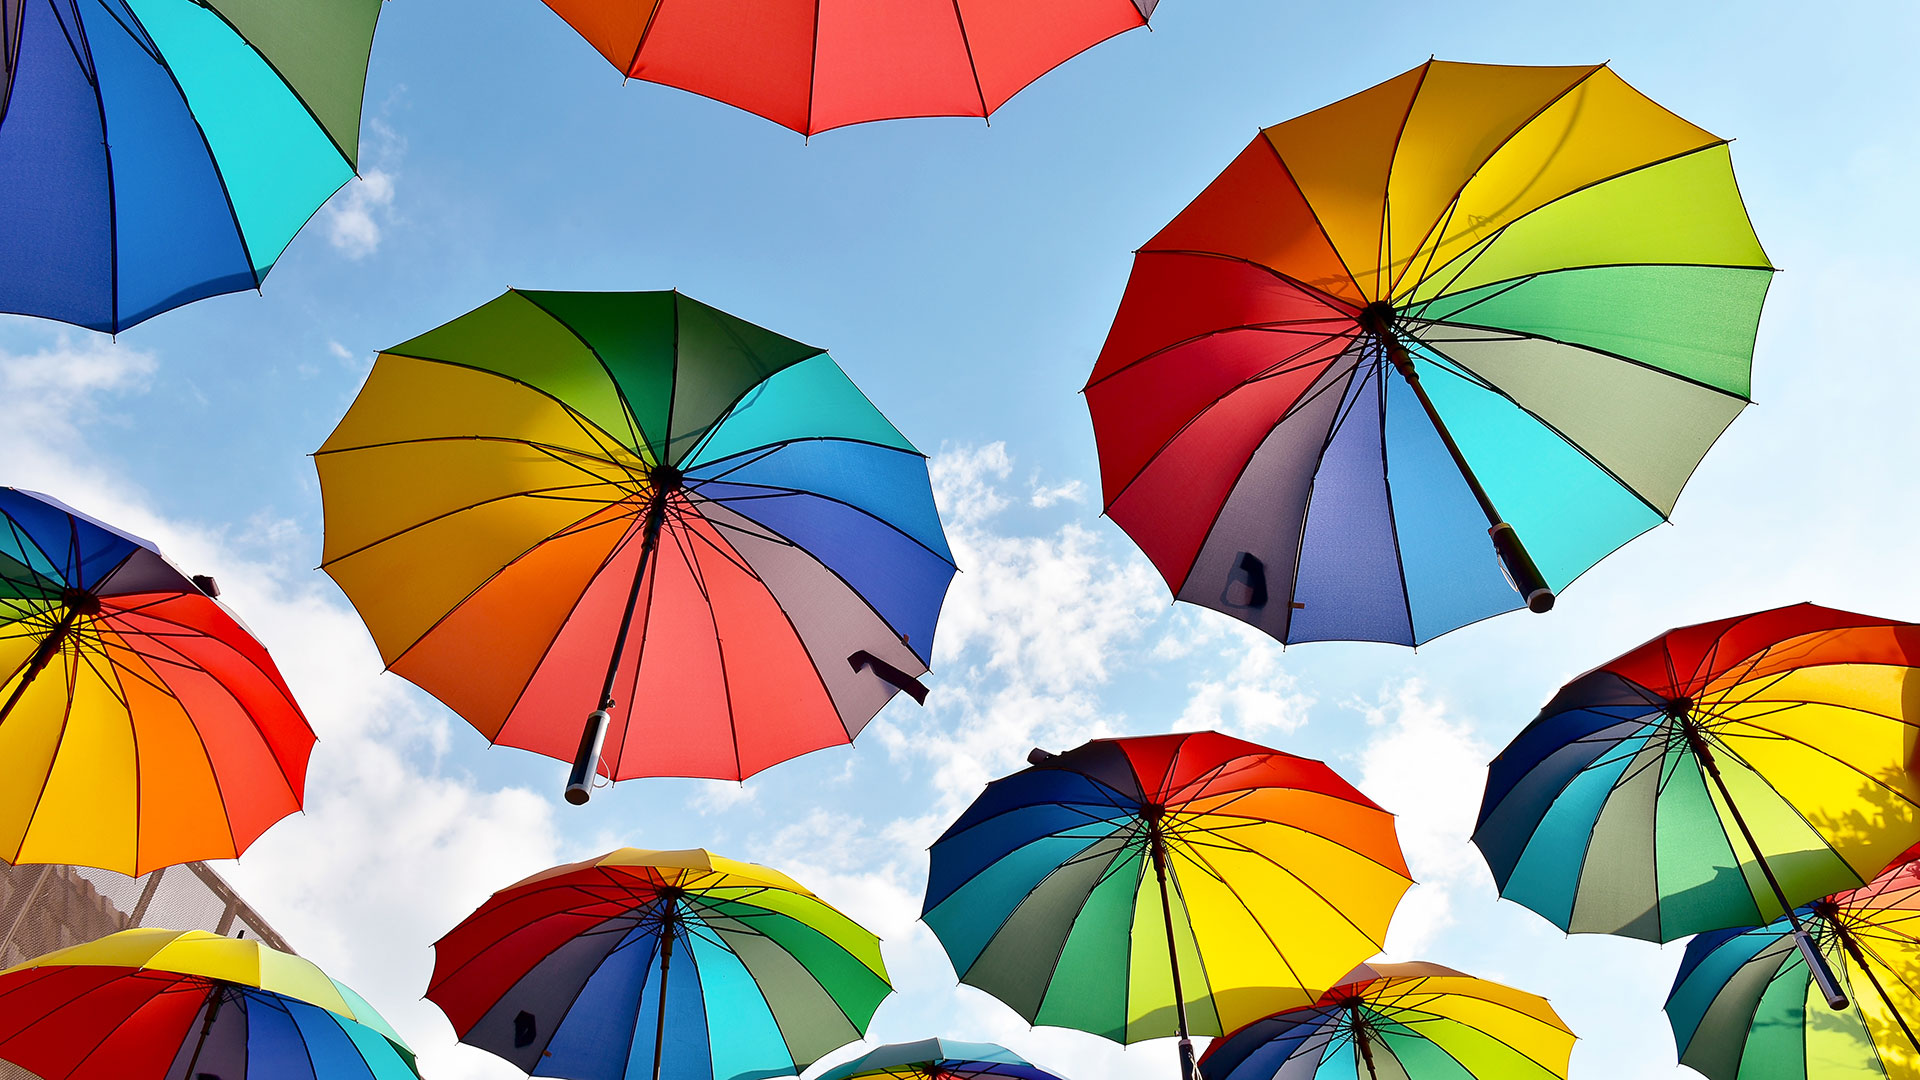 Image of multi-colored open umbrella's floating in sky